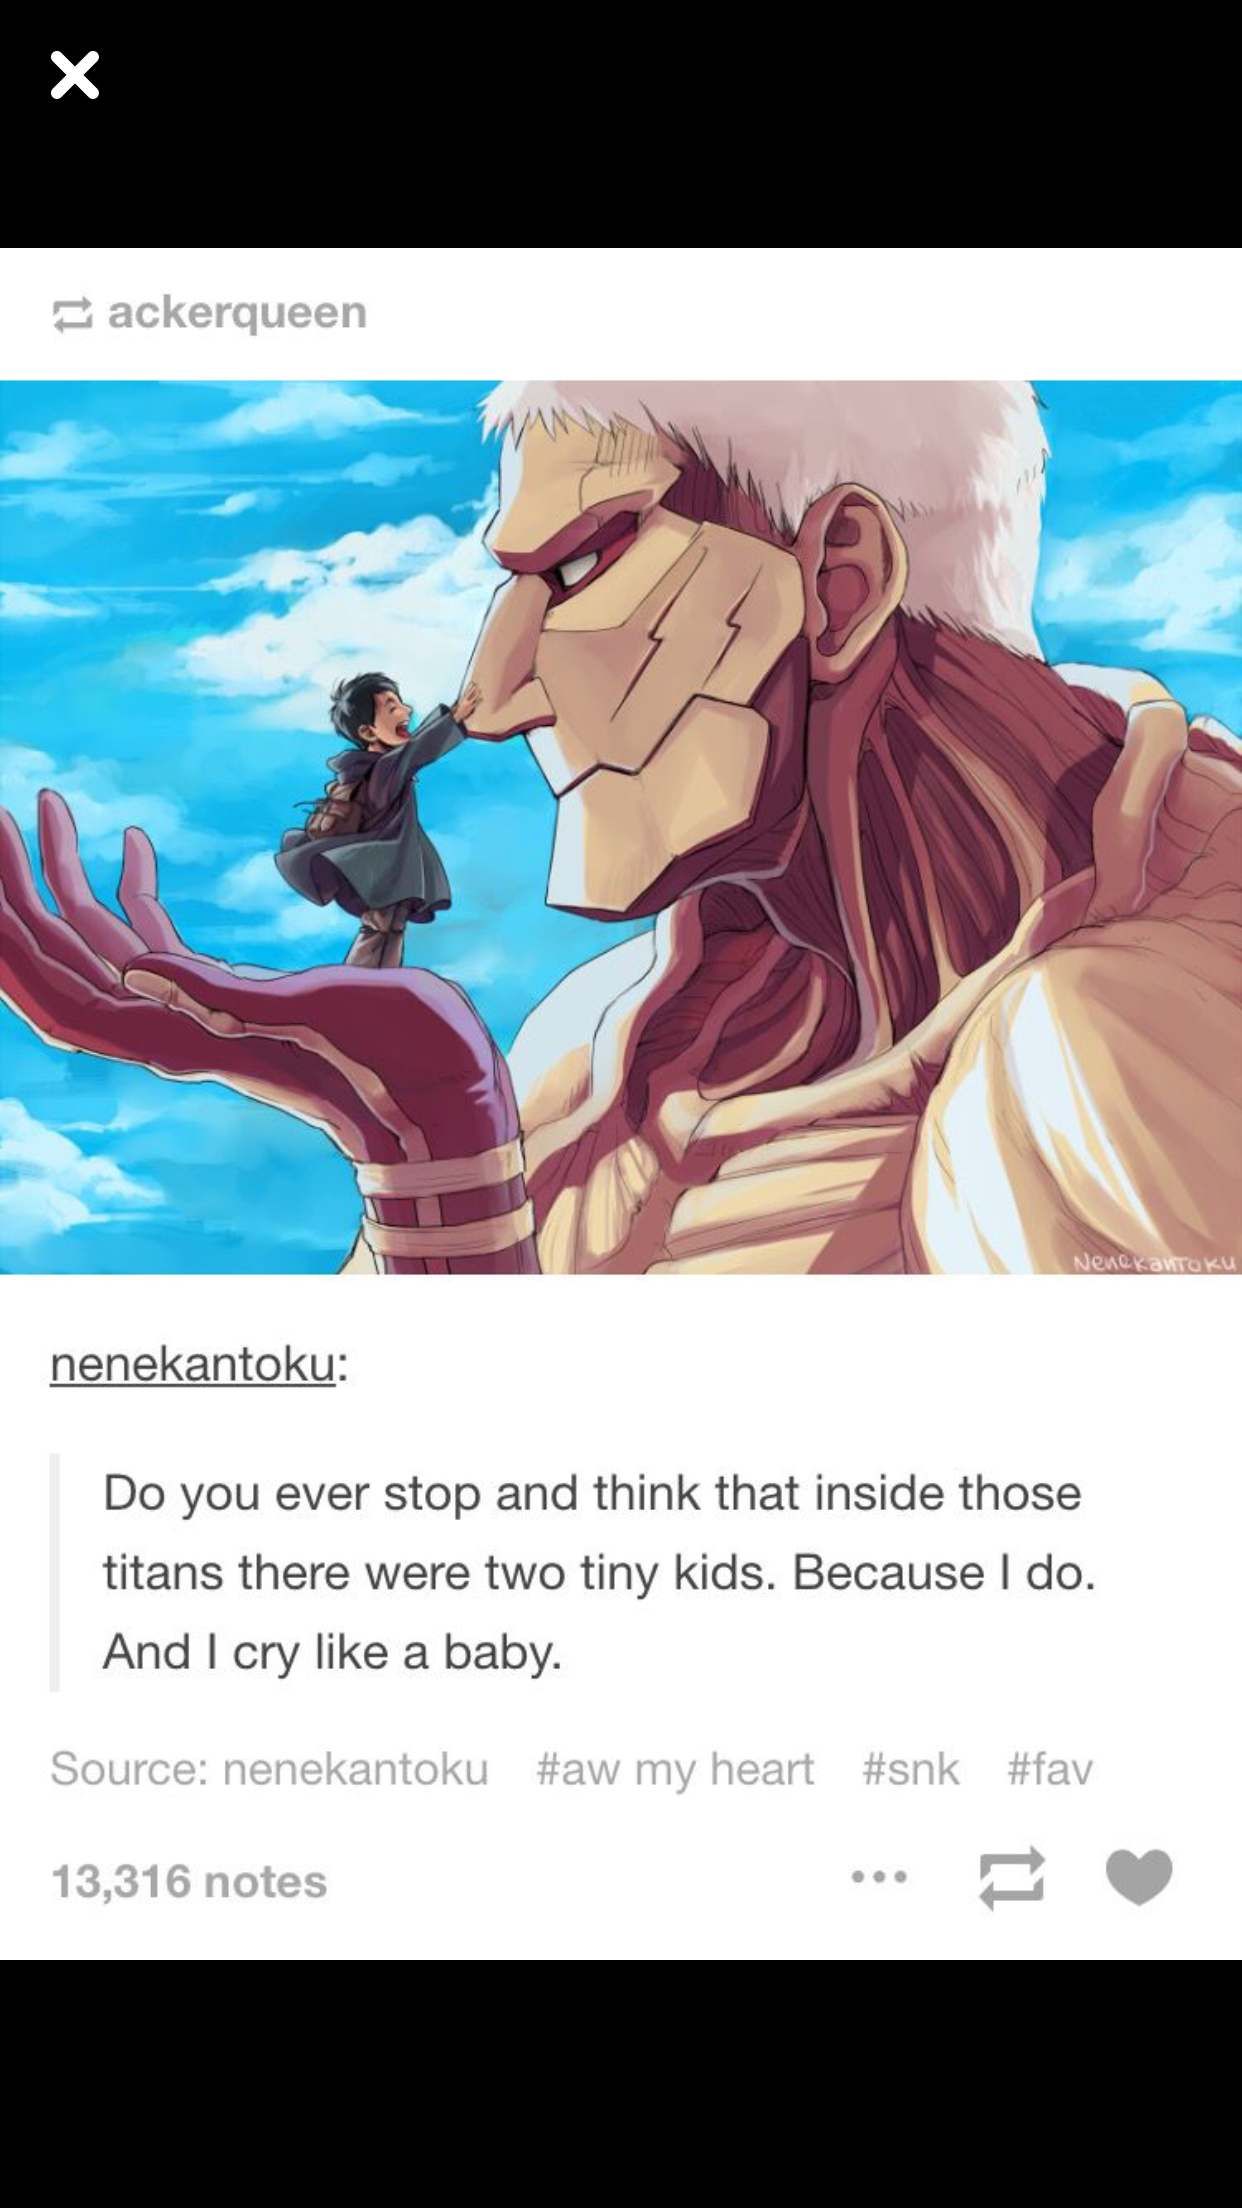 Pin By Ava On Attack On Titan Attack On Titan Cry Like A Baby Cory In The House